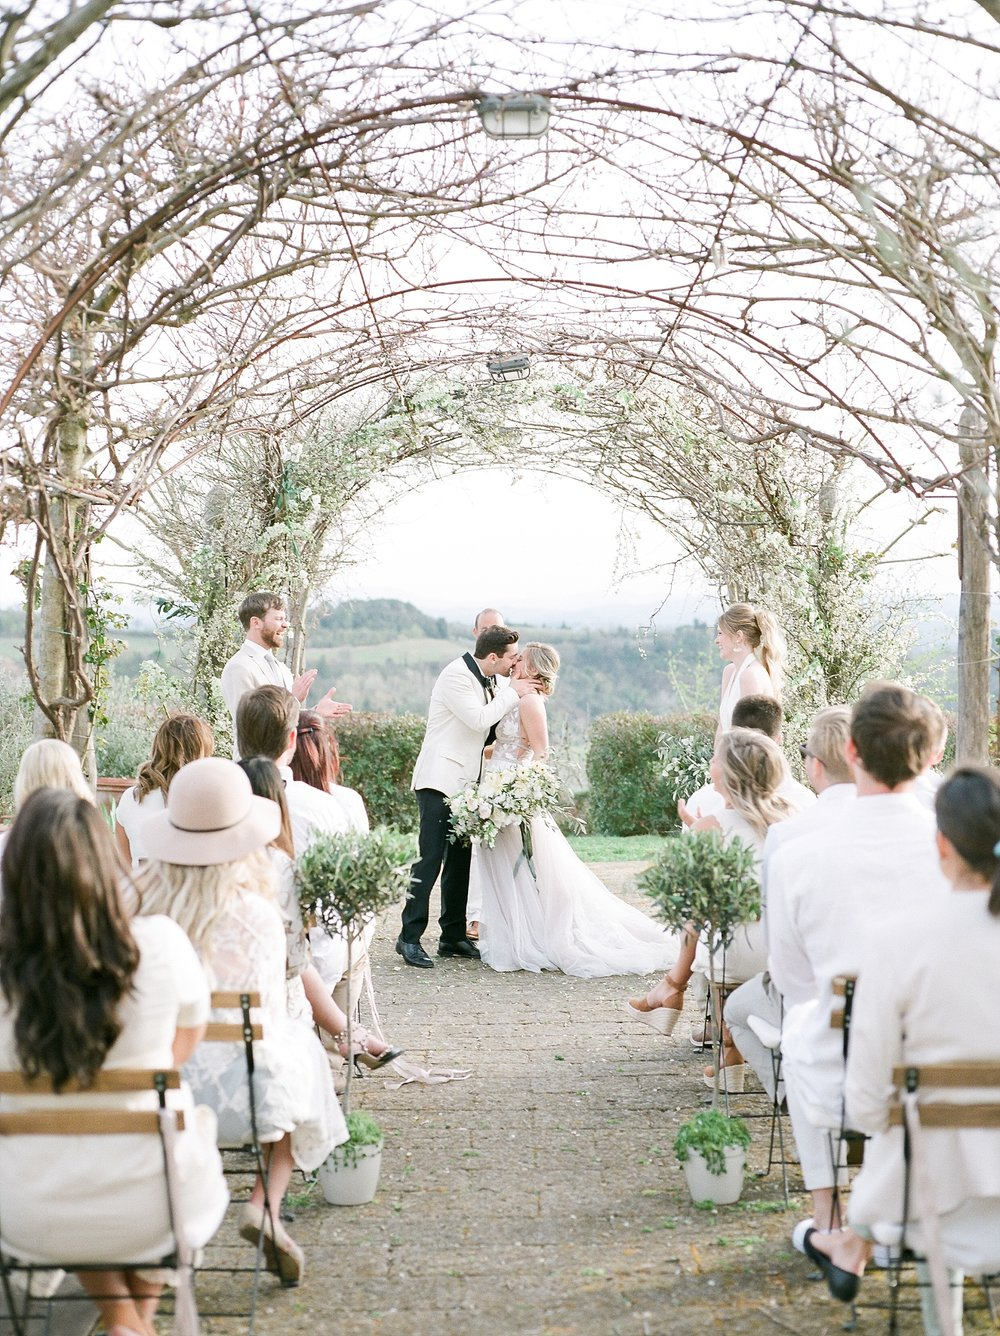 All White Destination Wedding in the Hills of Tuscany Italy at Estate Borgo Petrognano by Kelsi Kliethermes Photography_0048.jpg